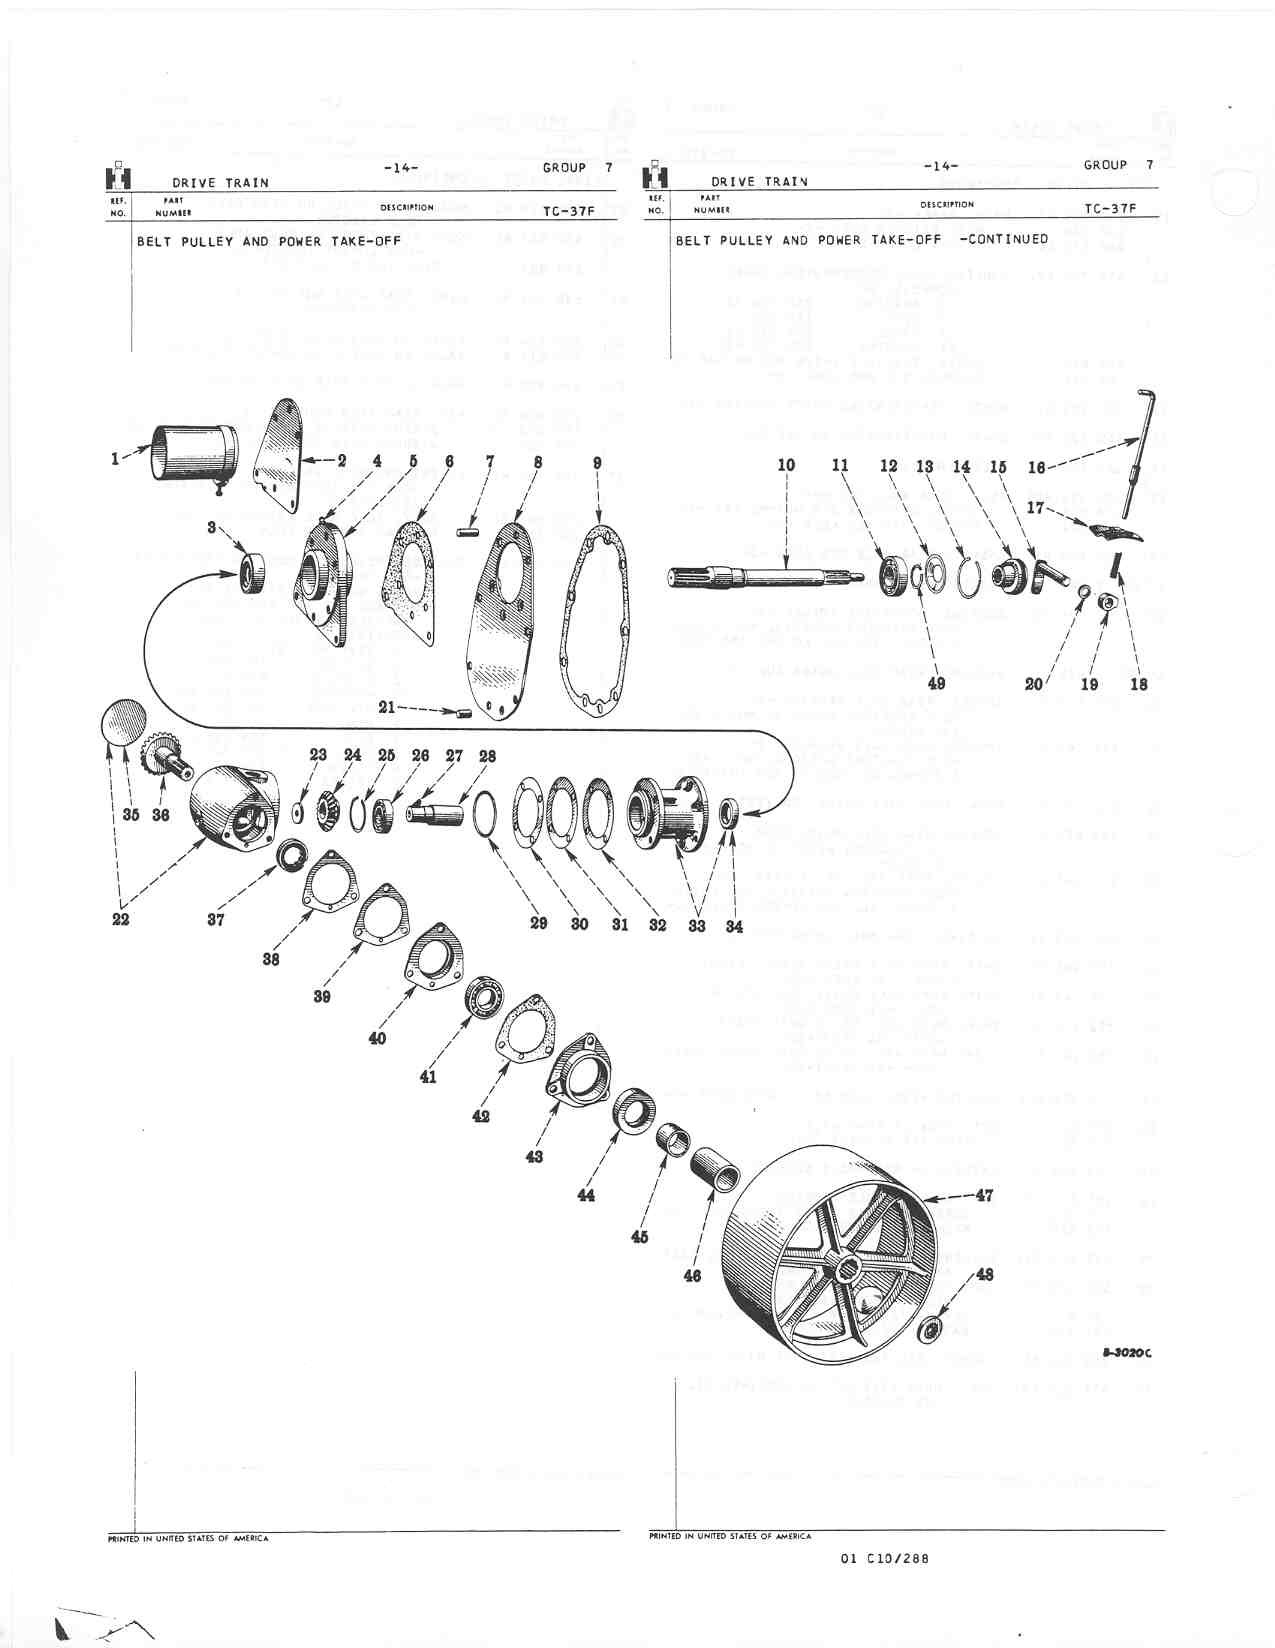 Farmall Pto Schematic - DIY Enthusiasts Wiring Diagrams • on cub cadet 782 schematic, cub cadet 1862 wiring-diagram, cub cadet 1440 wiring-diagram, cub cadet tractor wiring harness, cub cadet 2185 wiring-diagram, cub cadet 2155 wiring-diagram, cub cadet 682 wiring diagram, cub cadet 73 wiring-diagram, cub cadet 149 wiring harness, cub cadet 2135 wiring-diagram, cub cadet 1650 wiring harness, cub cadet electrical diagram,